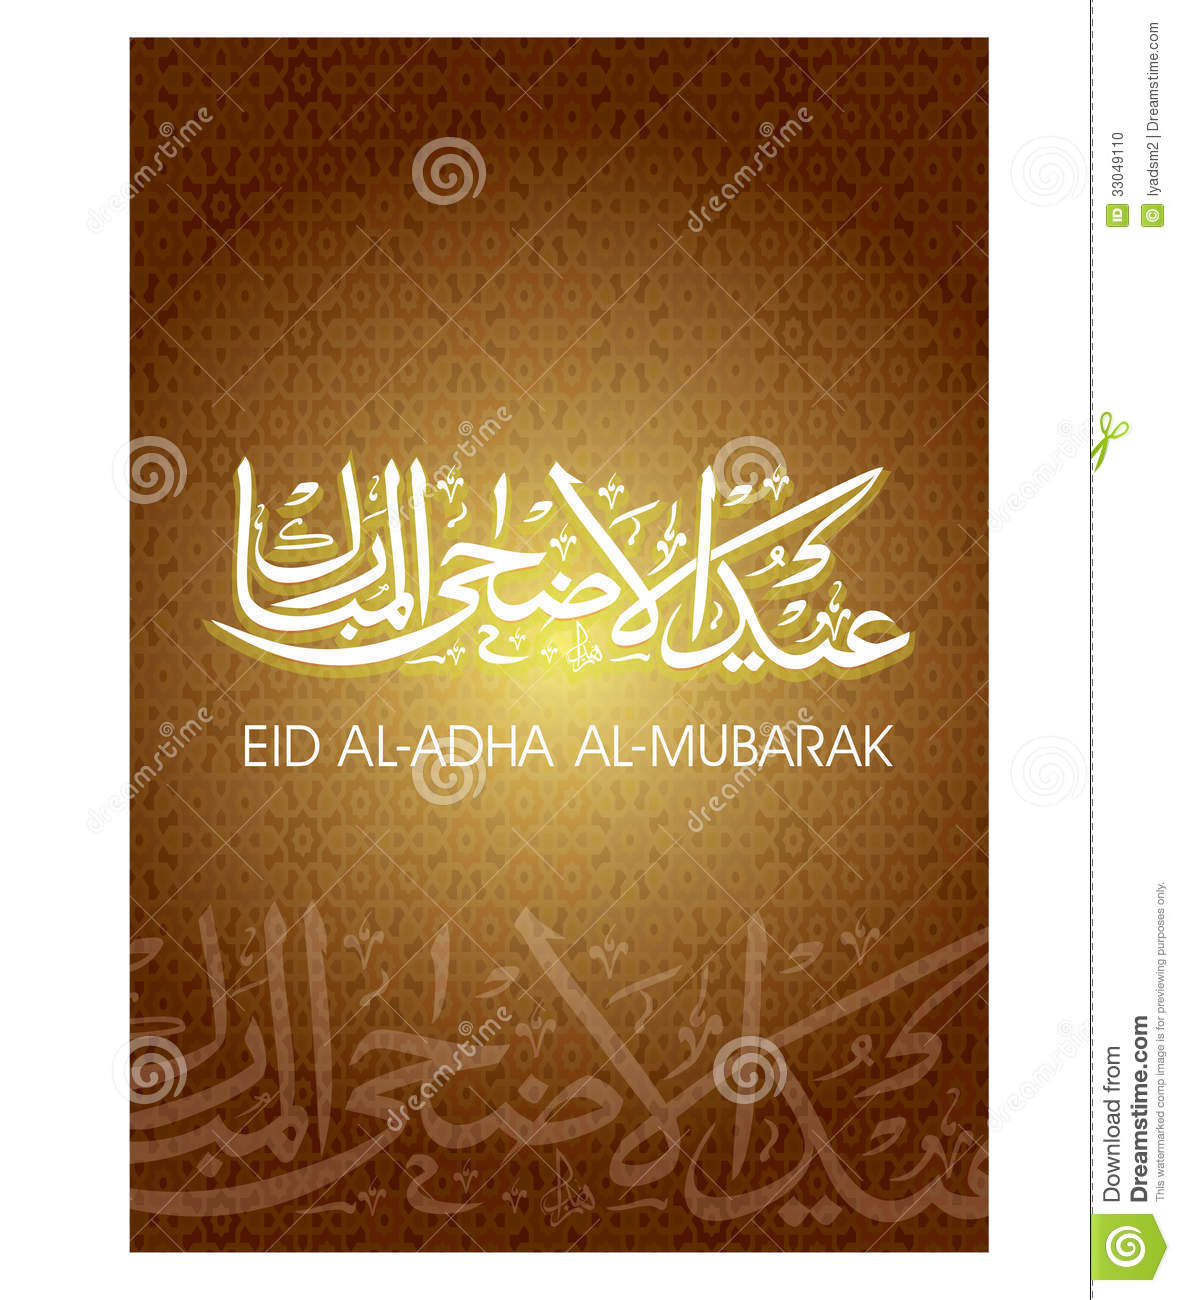 Eid al adha card arabic islamic calligraphy stock vector eid al adha card arabic islamic calligraphy kristyandbryce Image collections